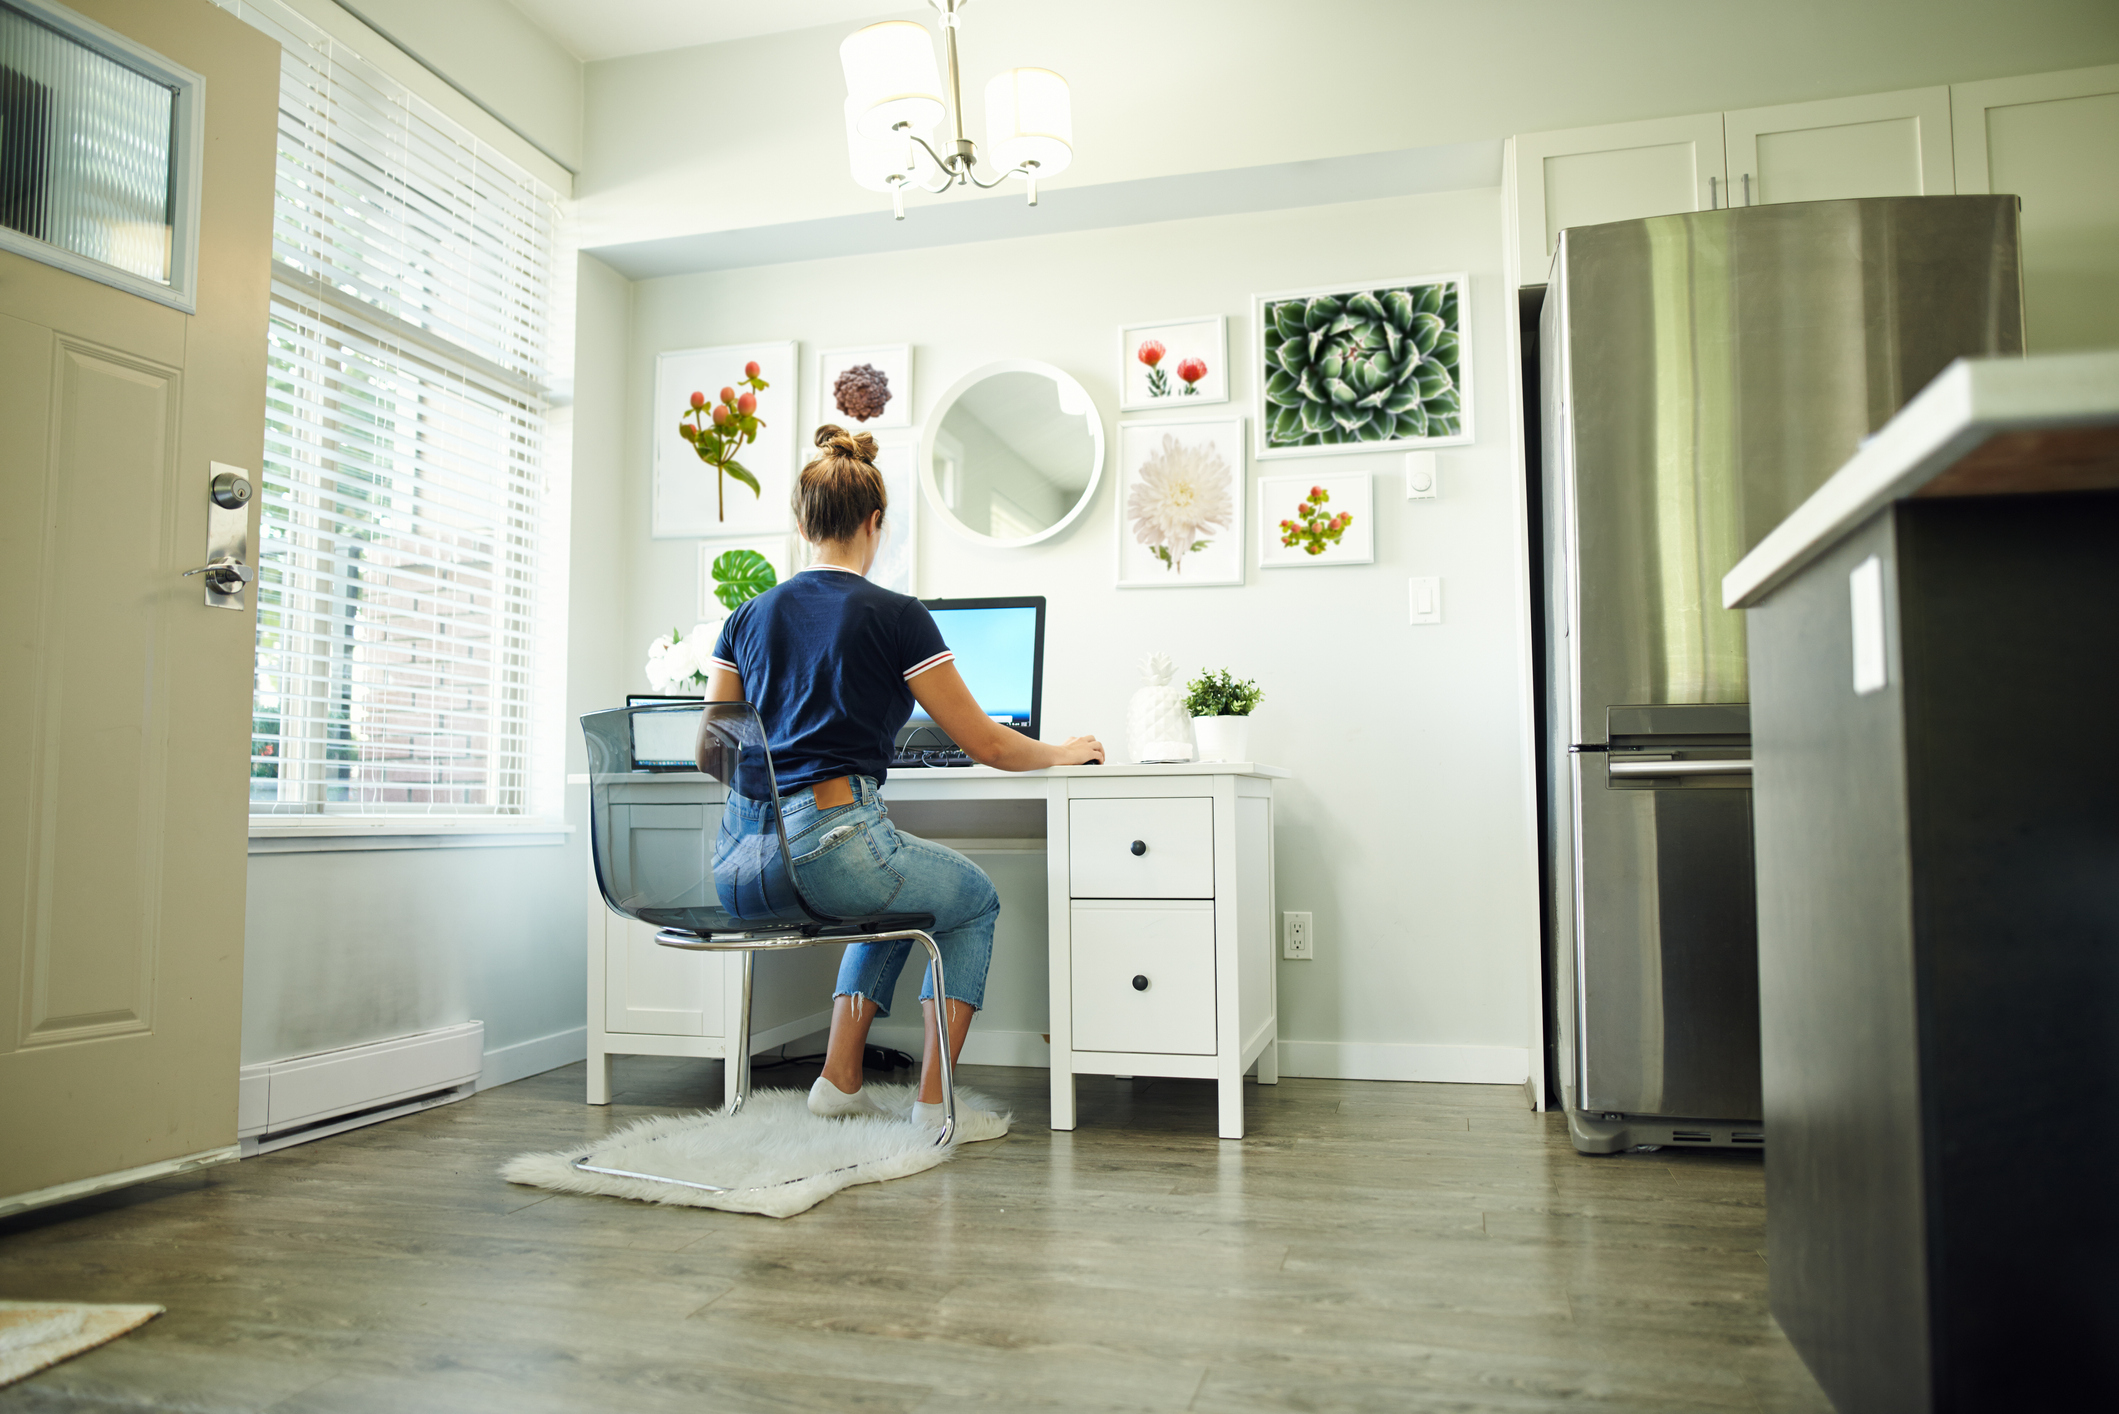 Rearview shot of a young woman using a computer while working from home